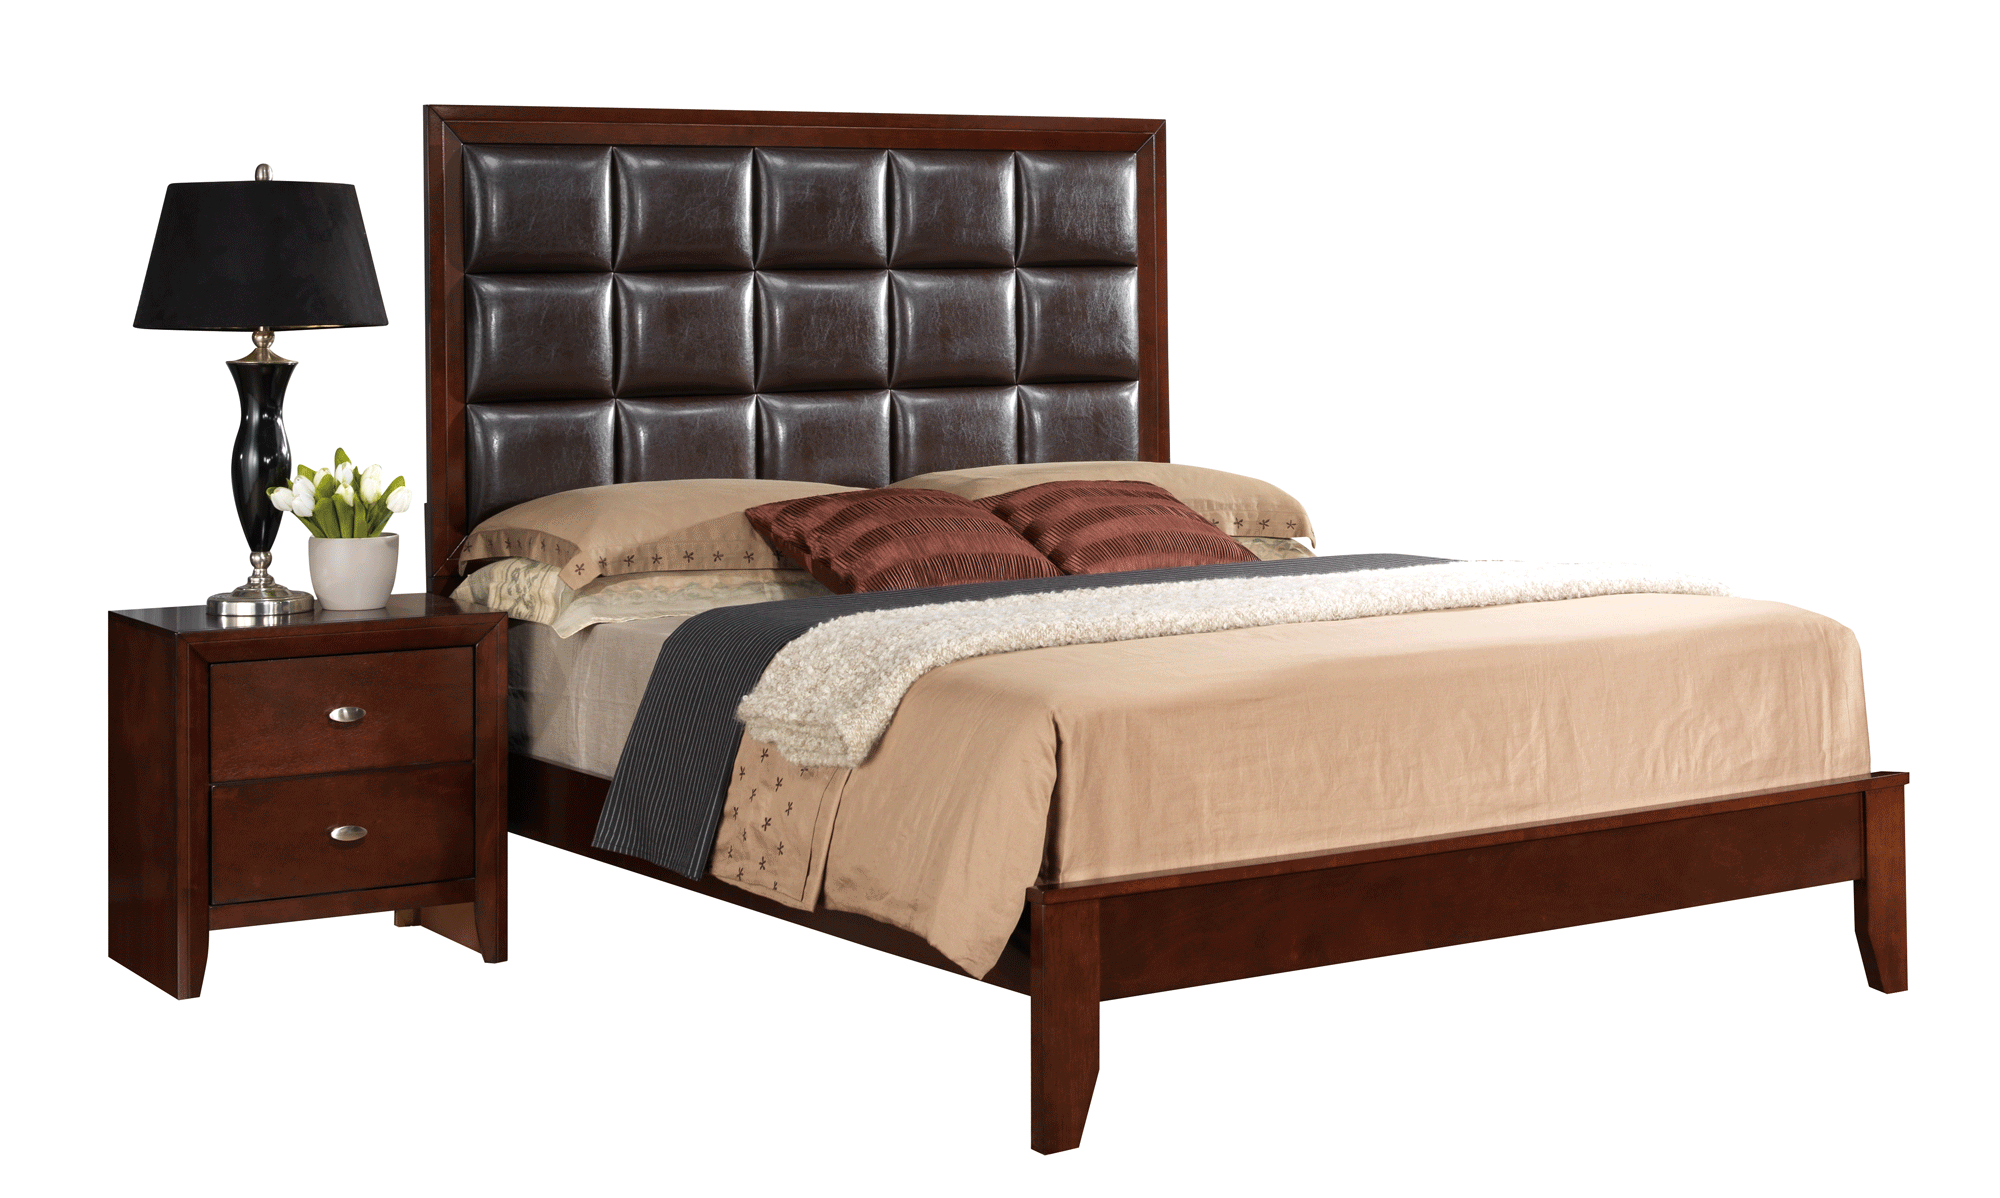 Carolina merlot bedroom set by global furniture for Carolina furniture